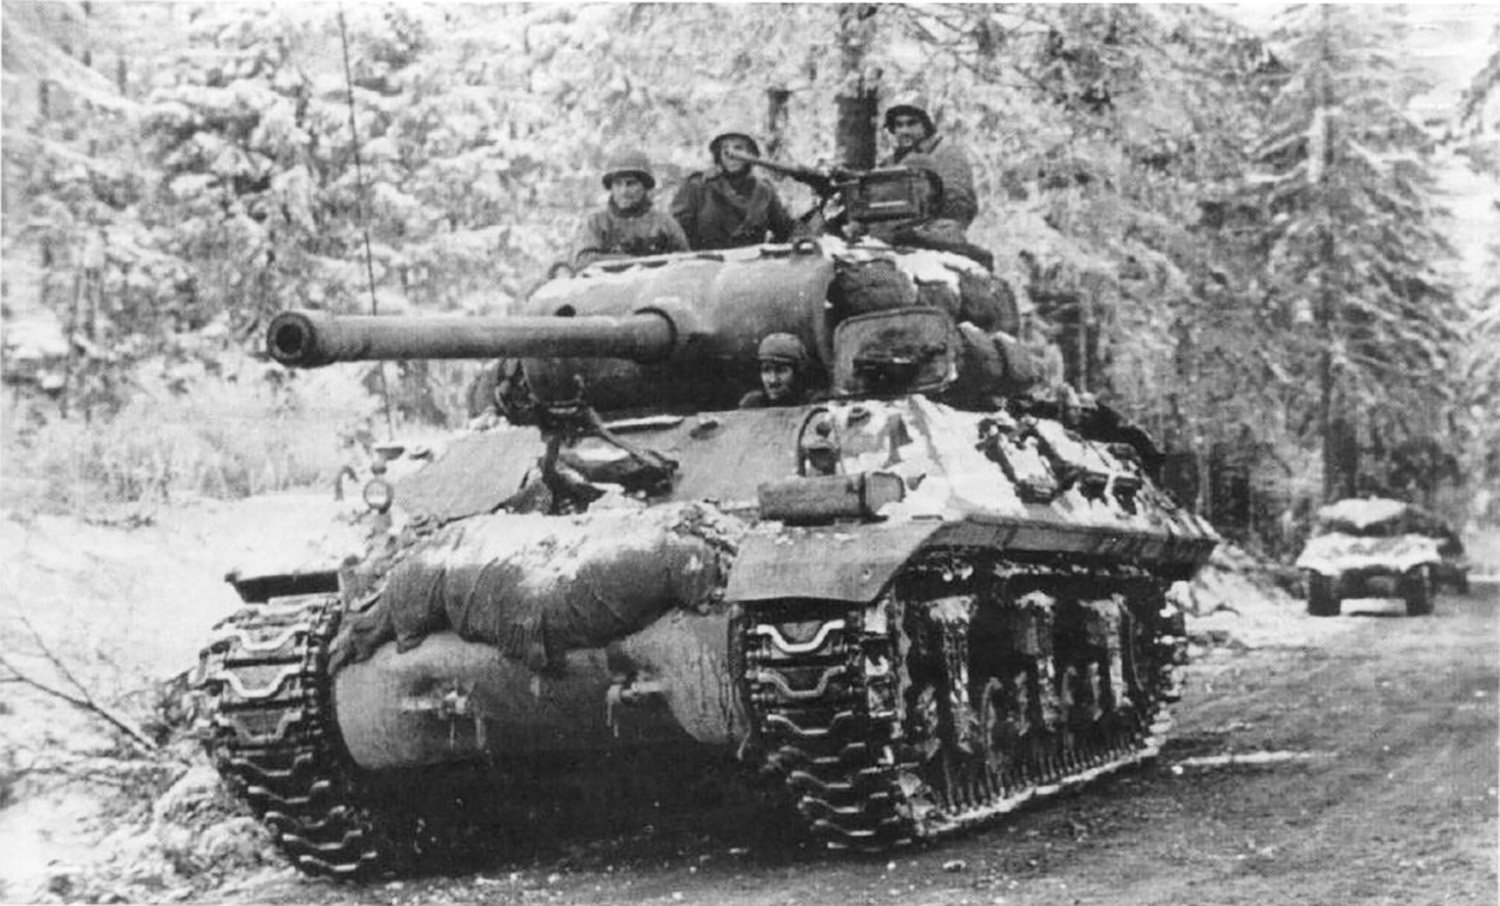 M36 JAckson tank destroyer fighting in the Bulge